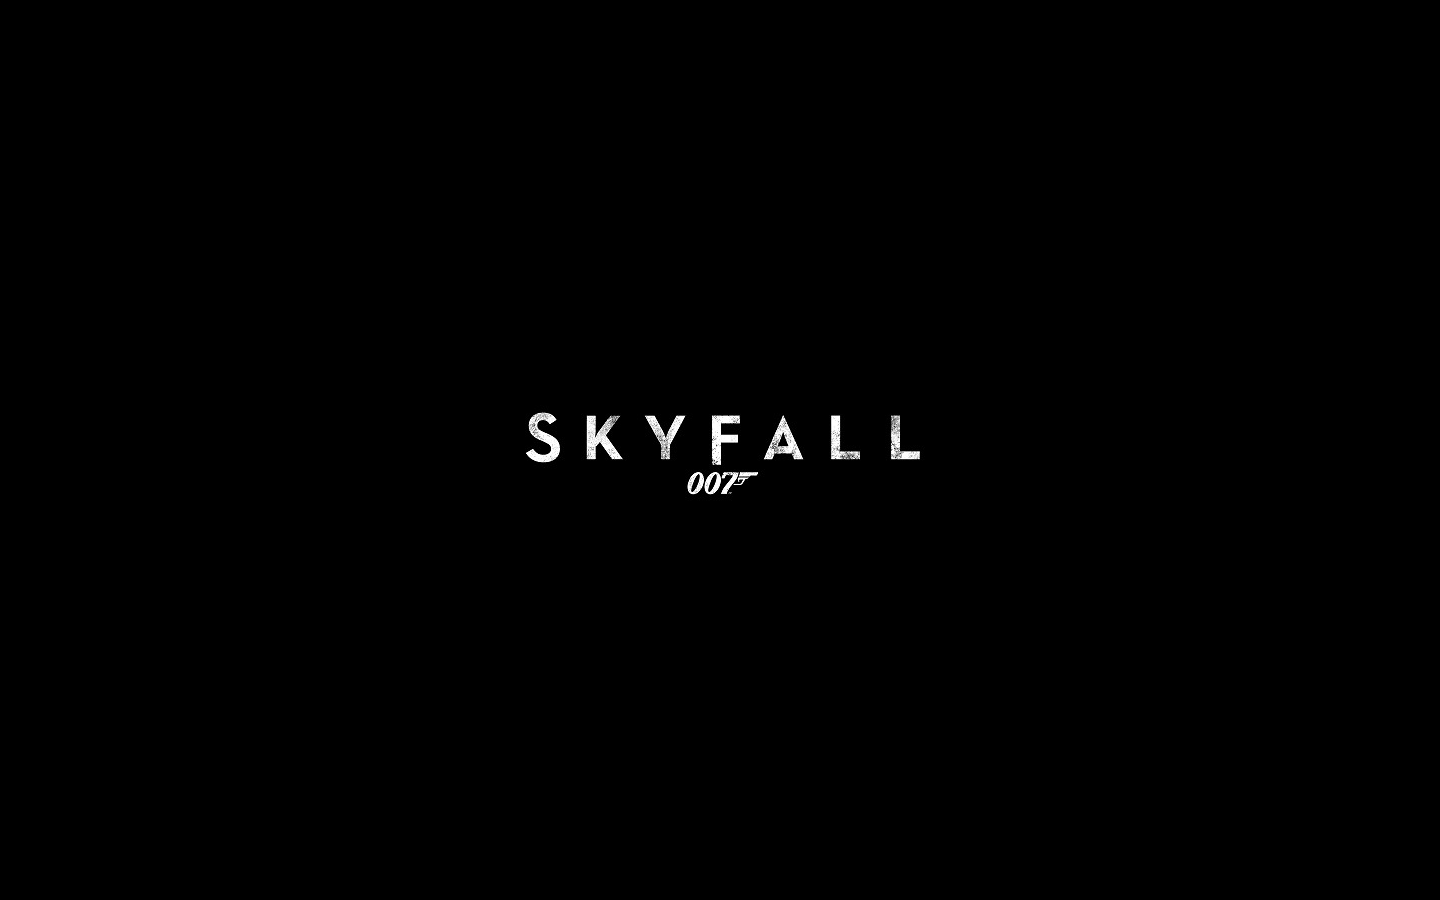 Skyfall 007 Movie Poster HD Wallpapers HD Wallpapers Backgrounds 1440x900